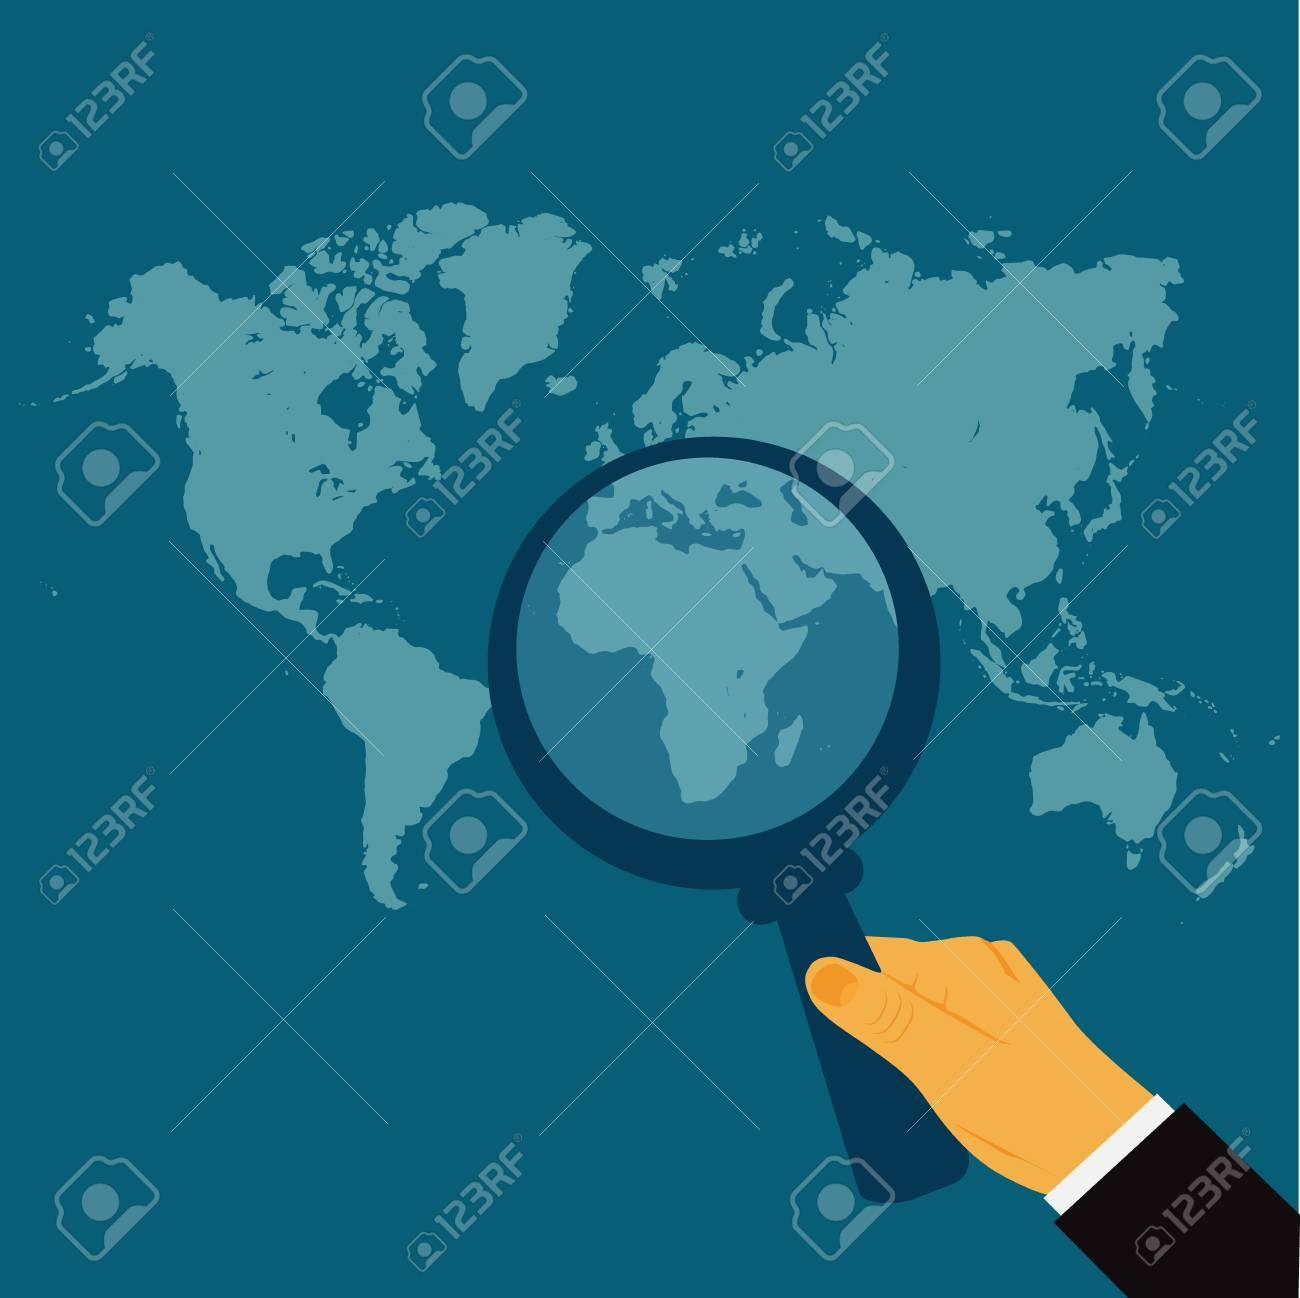 Search World Map.Hand Holding Magnify Glass World Map Search Vector Illustration